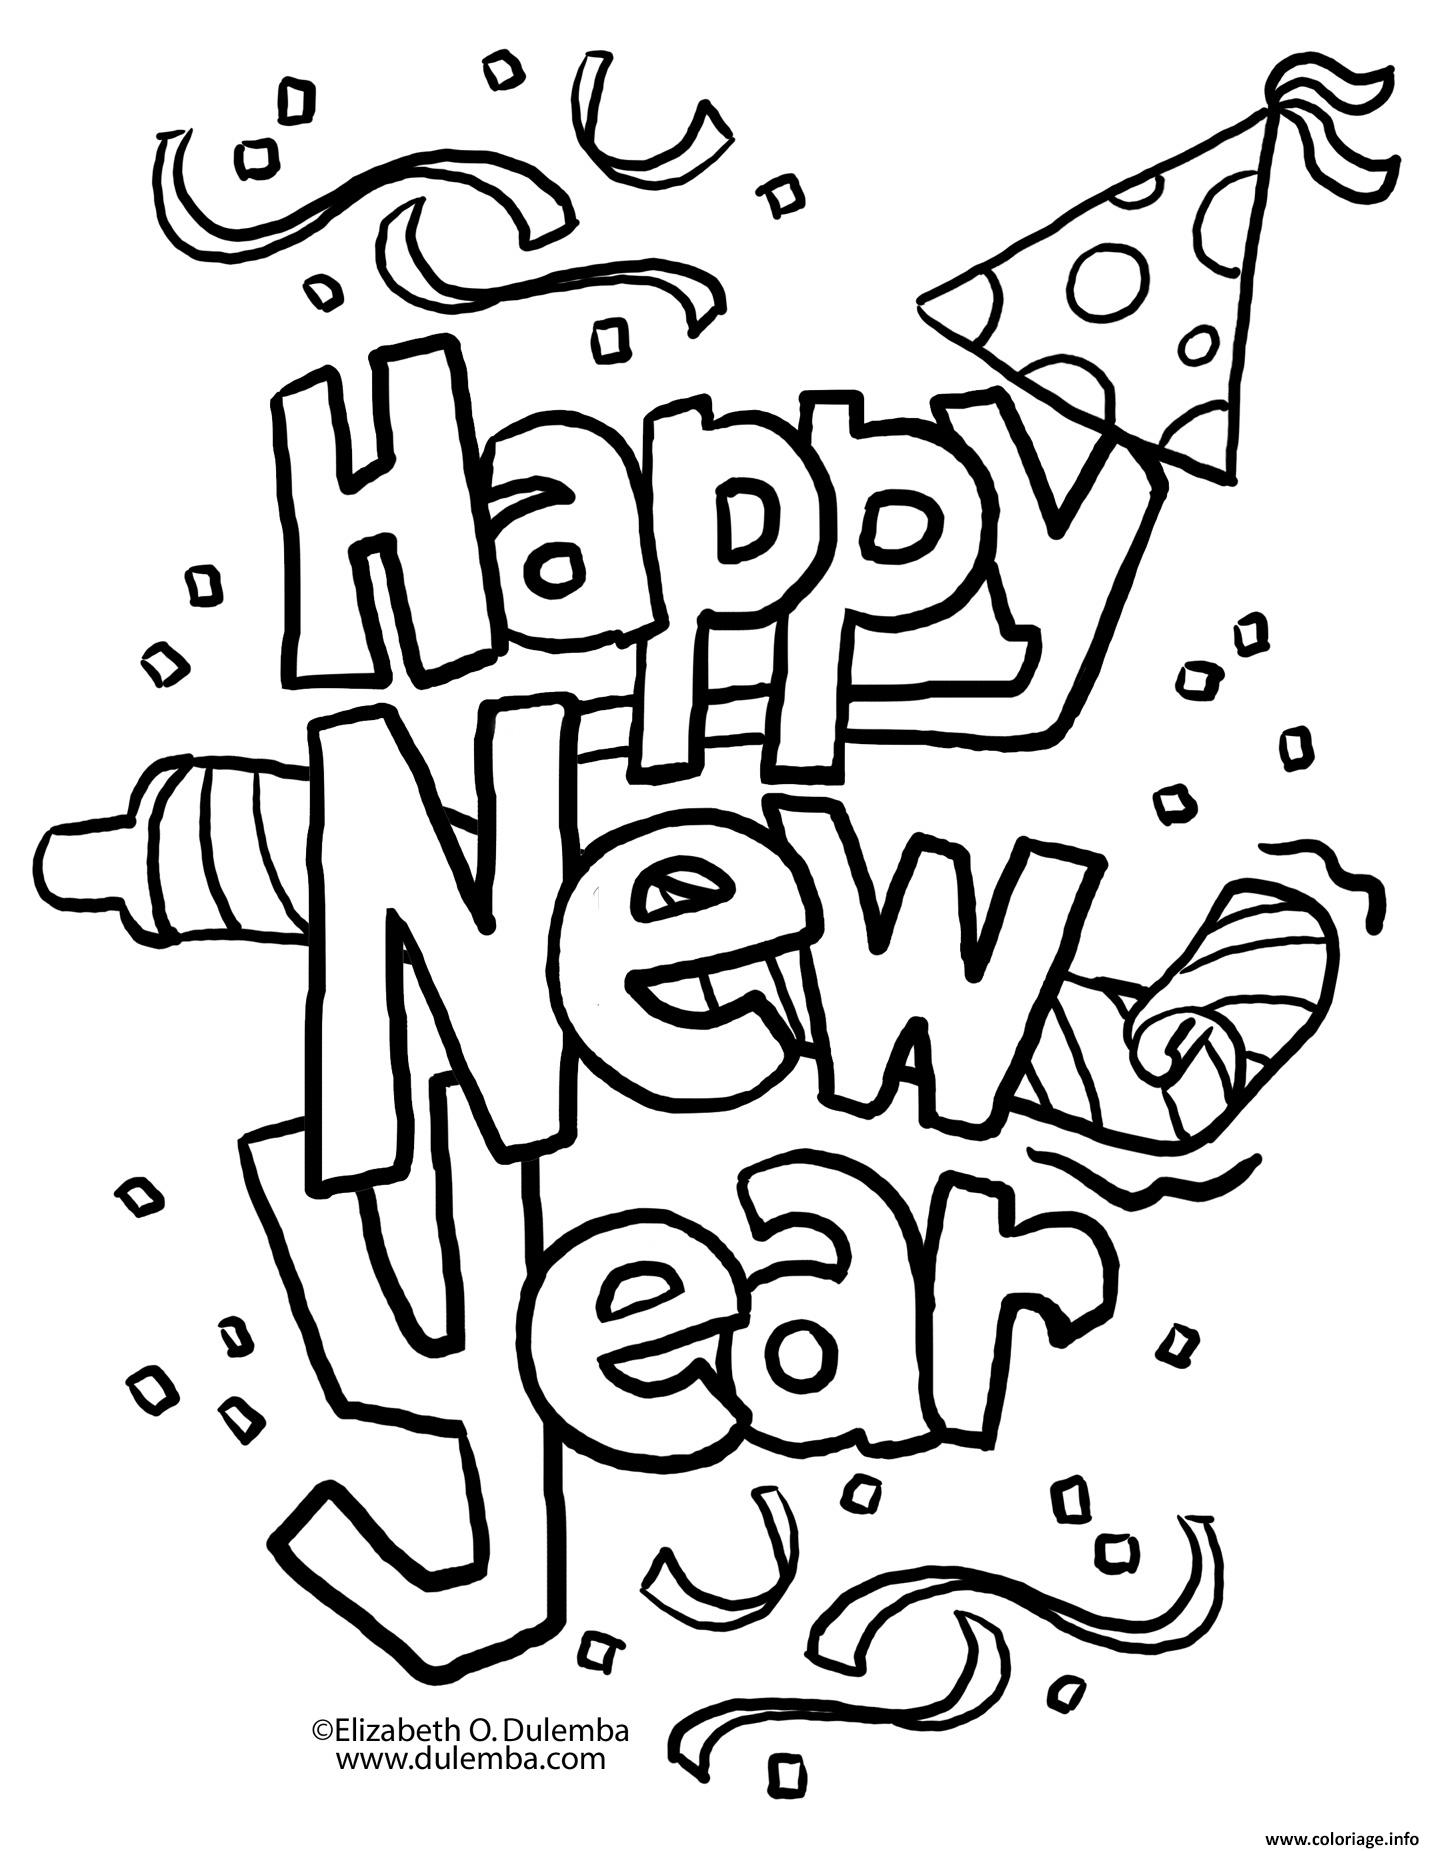 Agréable Dessin Happy New Year 32 Dans Coloriage Books for Dessin Happy New Year